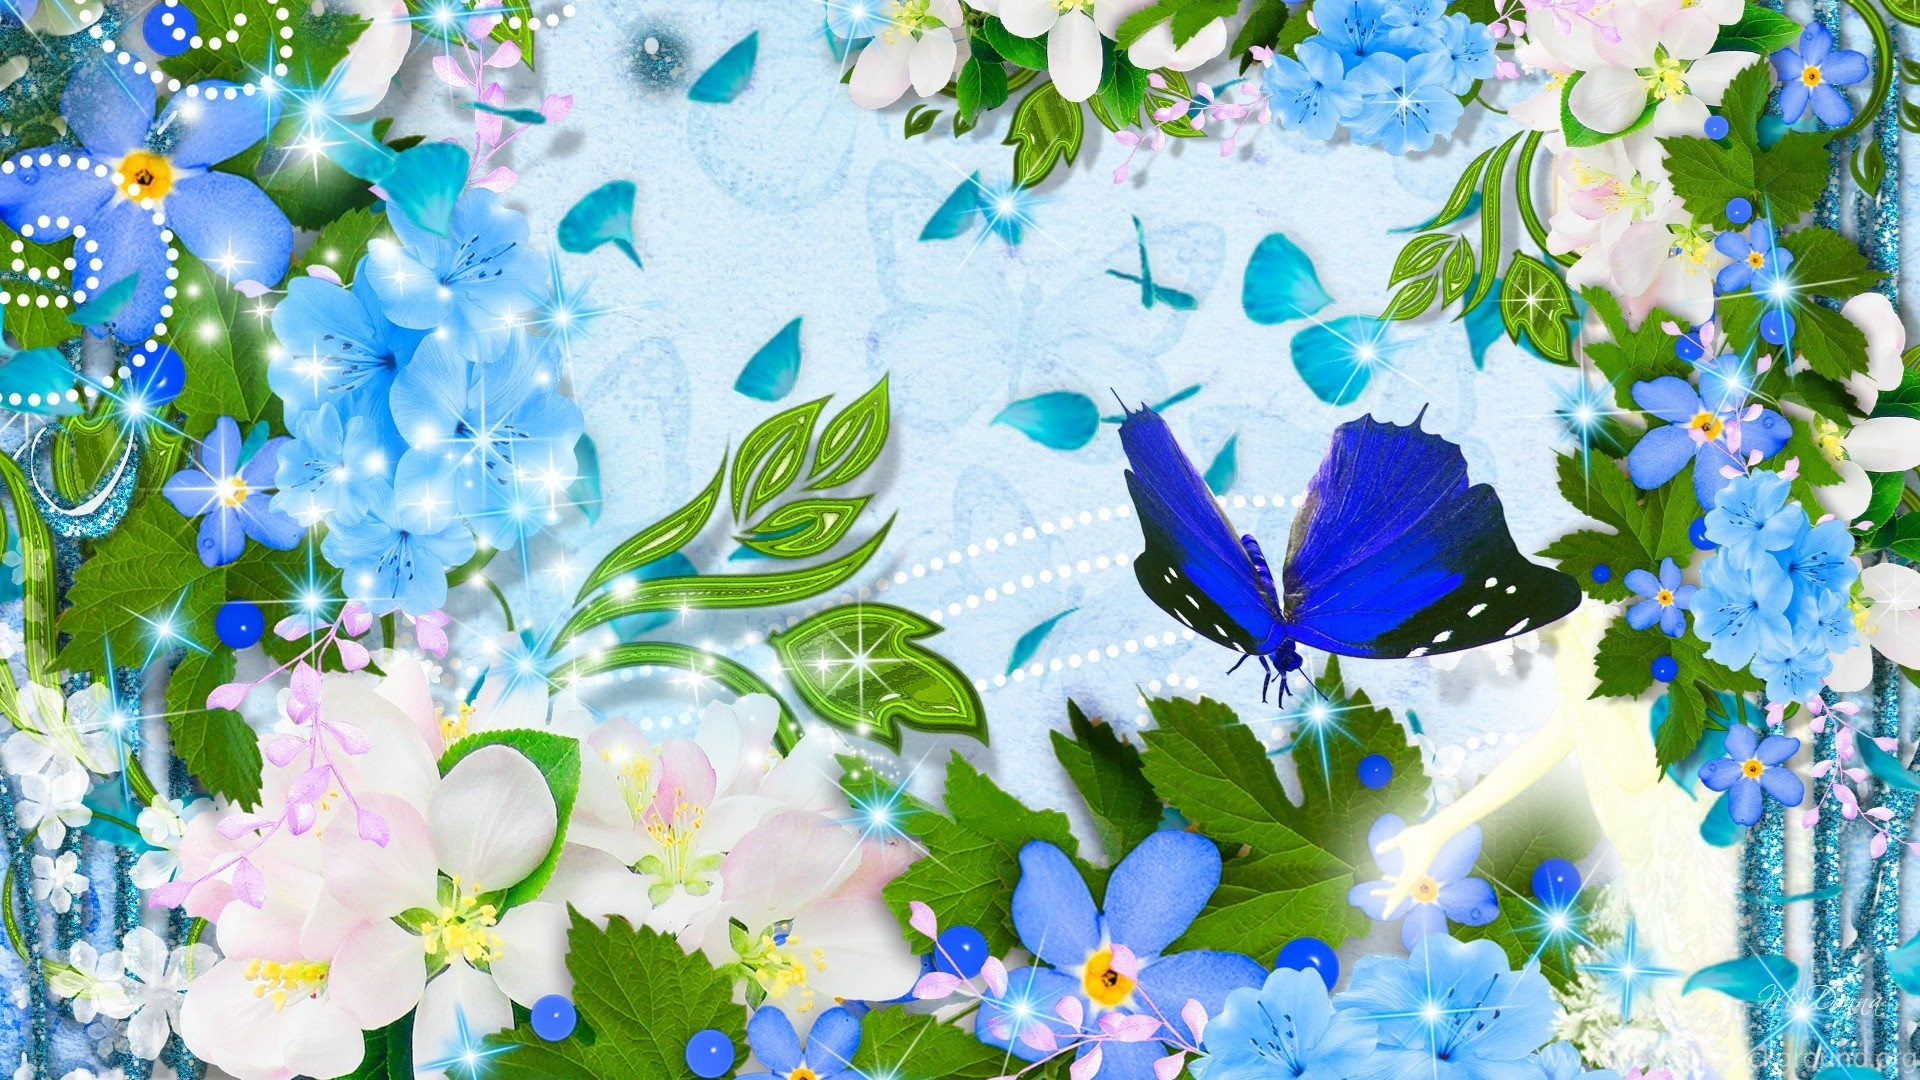 Flowers With Butterfly Wallpapers Hd Wallpapers 1481102 Desktop